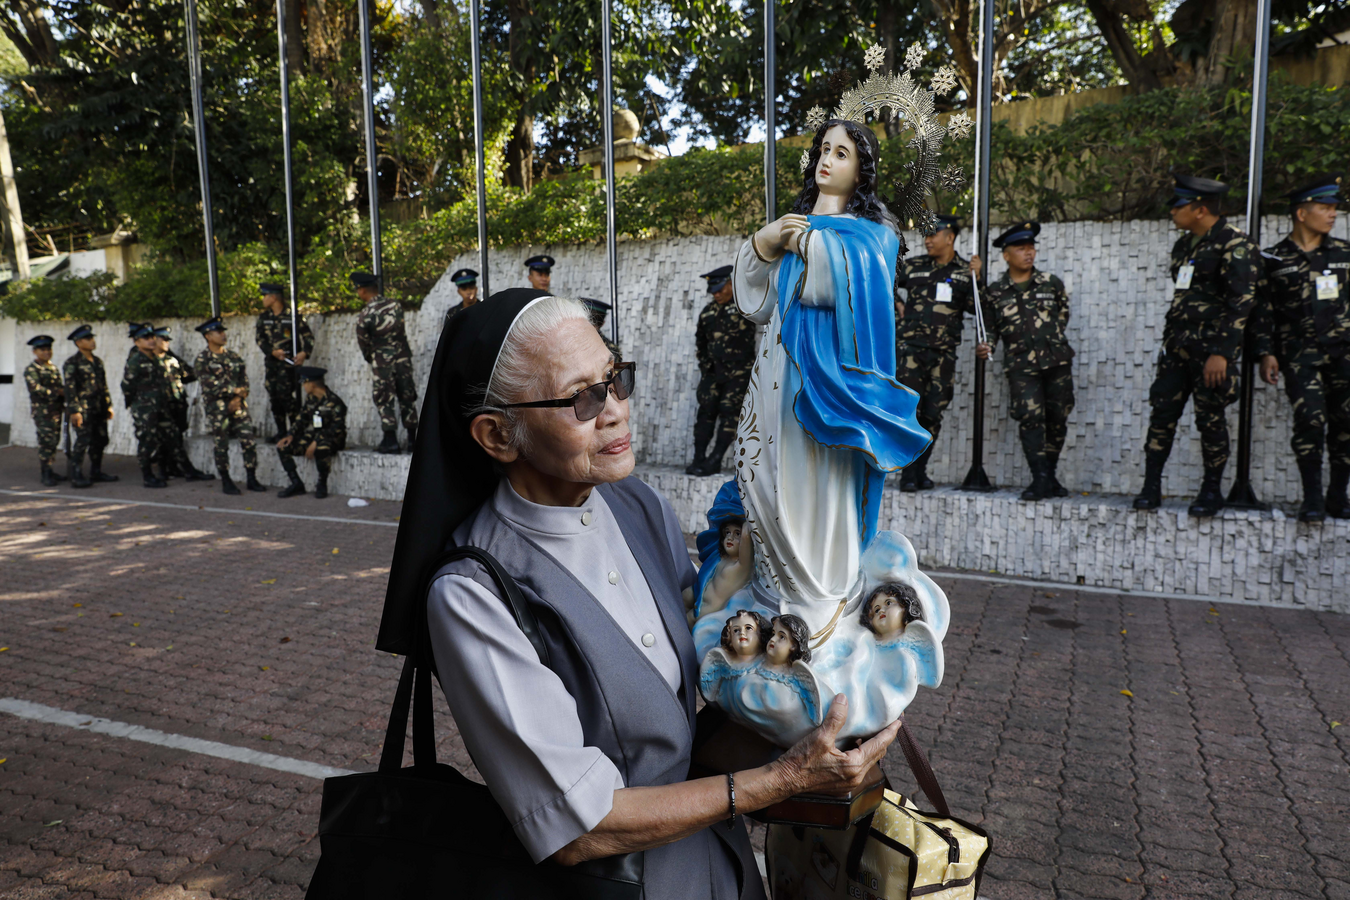 A nun holds a statue of Mary Feb. 23 as soldiers prepare for a flag-raising rehearsal for ceremonies marking the February 1986 anniversary of the People Power Revolution in Manila, Philippines. The nonviolent revolution led to the toppling of President Ferdinand Marcos and the restoration of the country's democracy. (CNS photo/Rolex Dela Pena, EPA)